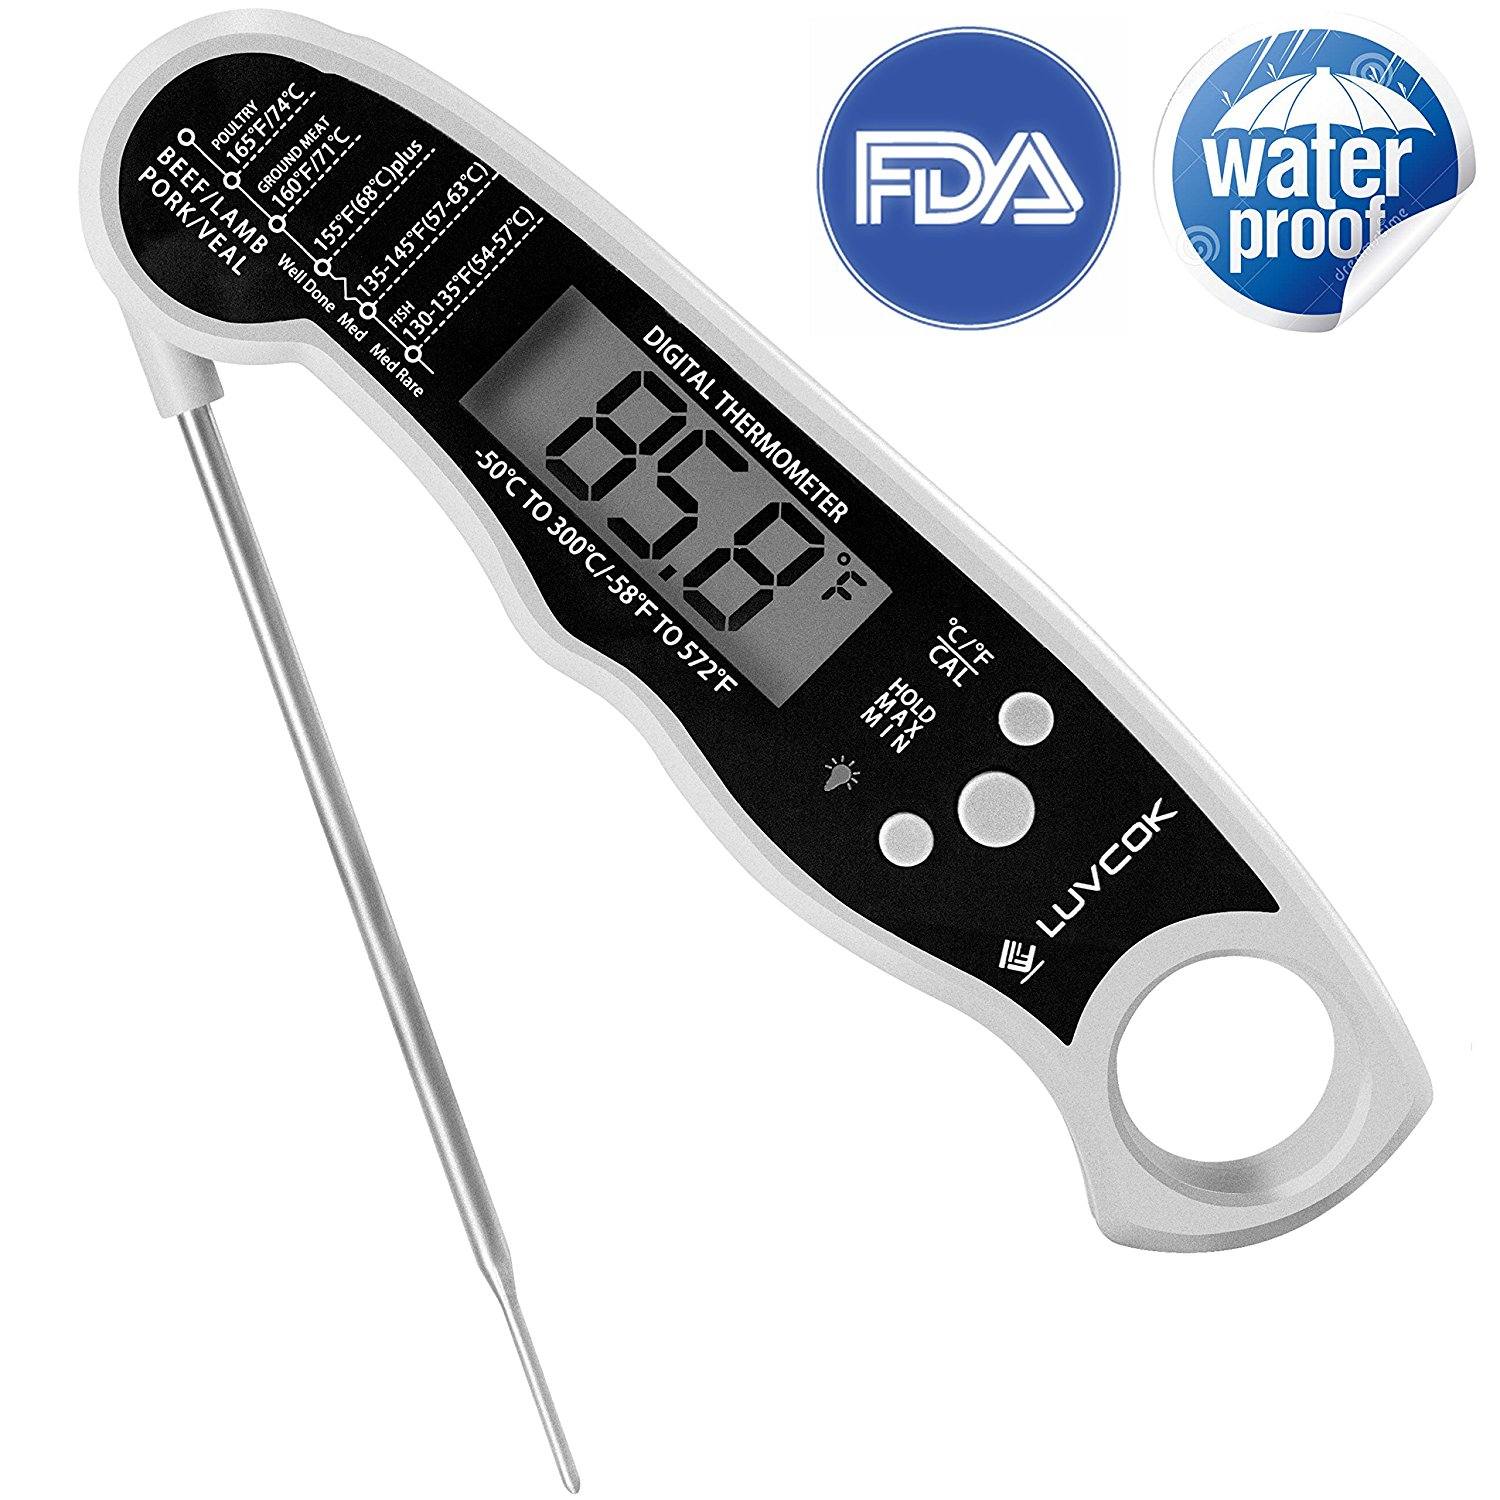 Food Thermometer, Digital Cooking Thermometer, Instant Re...